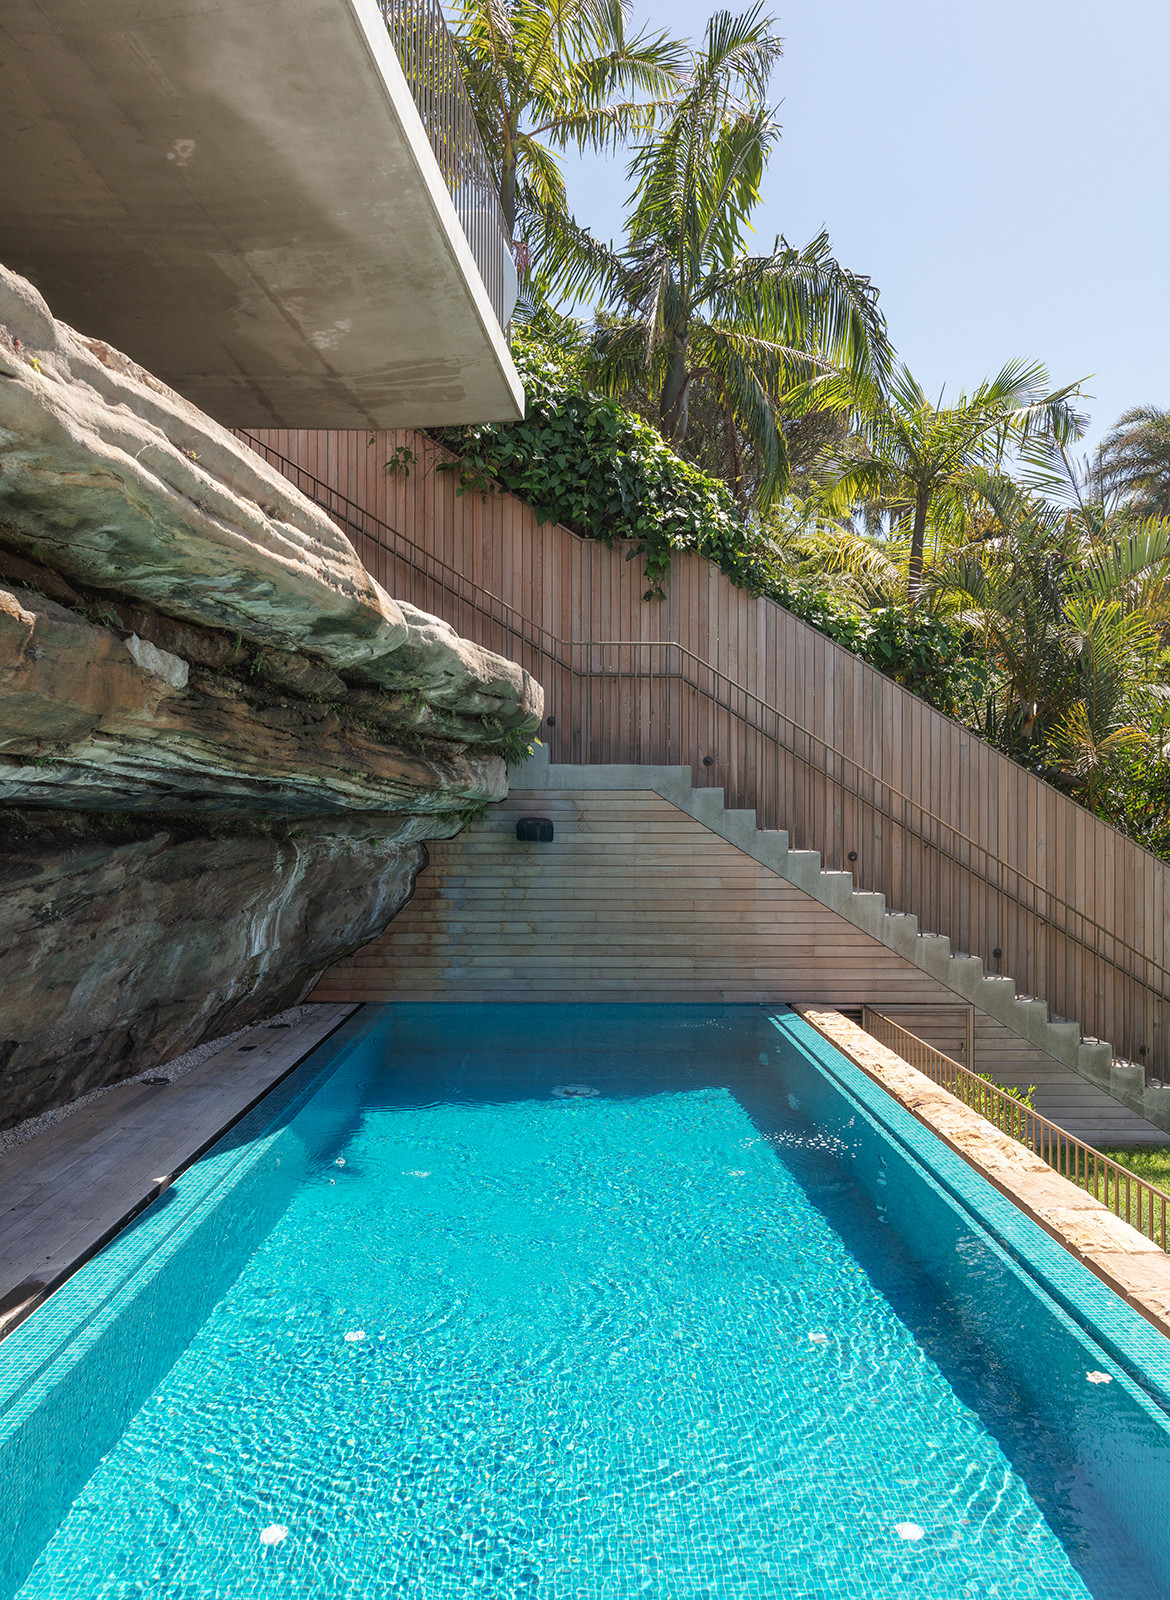 Kutti Beach House Matthew Woodward CC Murray Fredericks pool